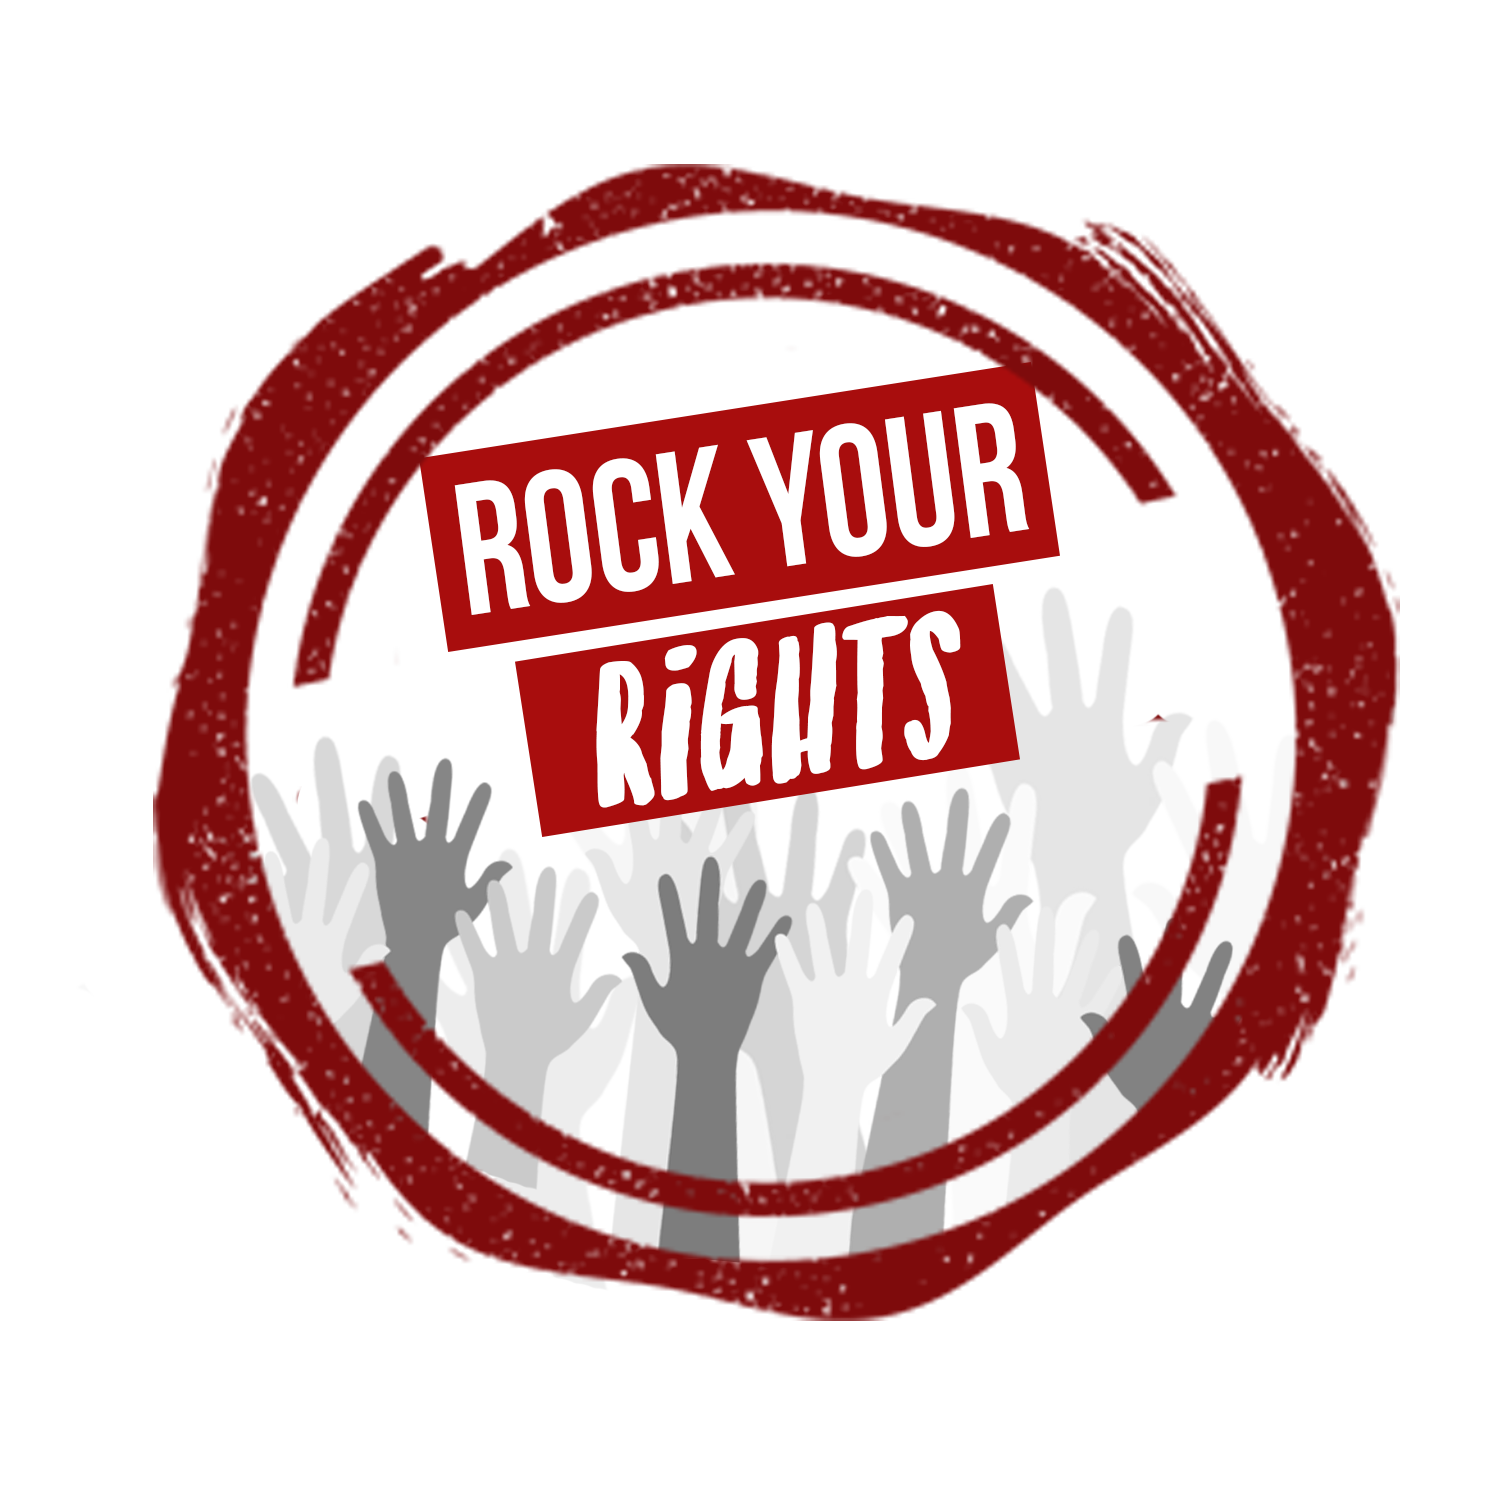 Rock Your Rights of Creative Visions